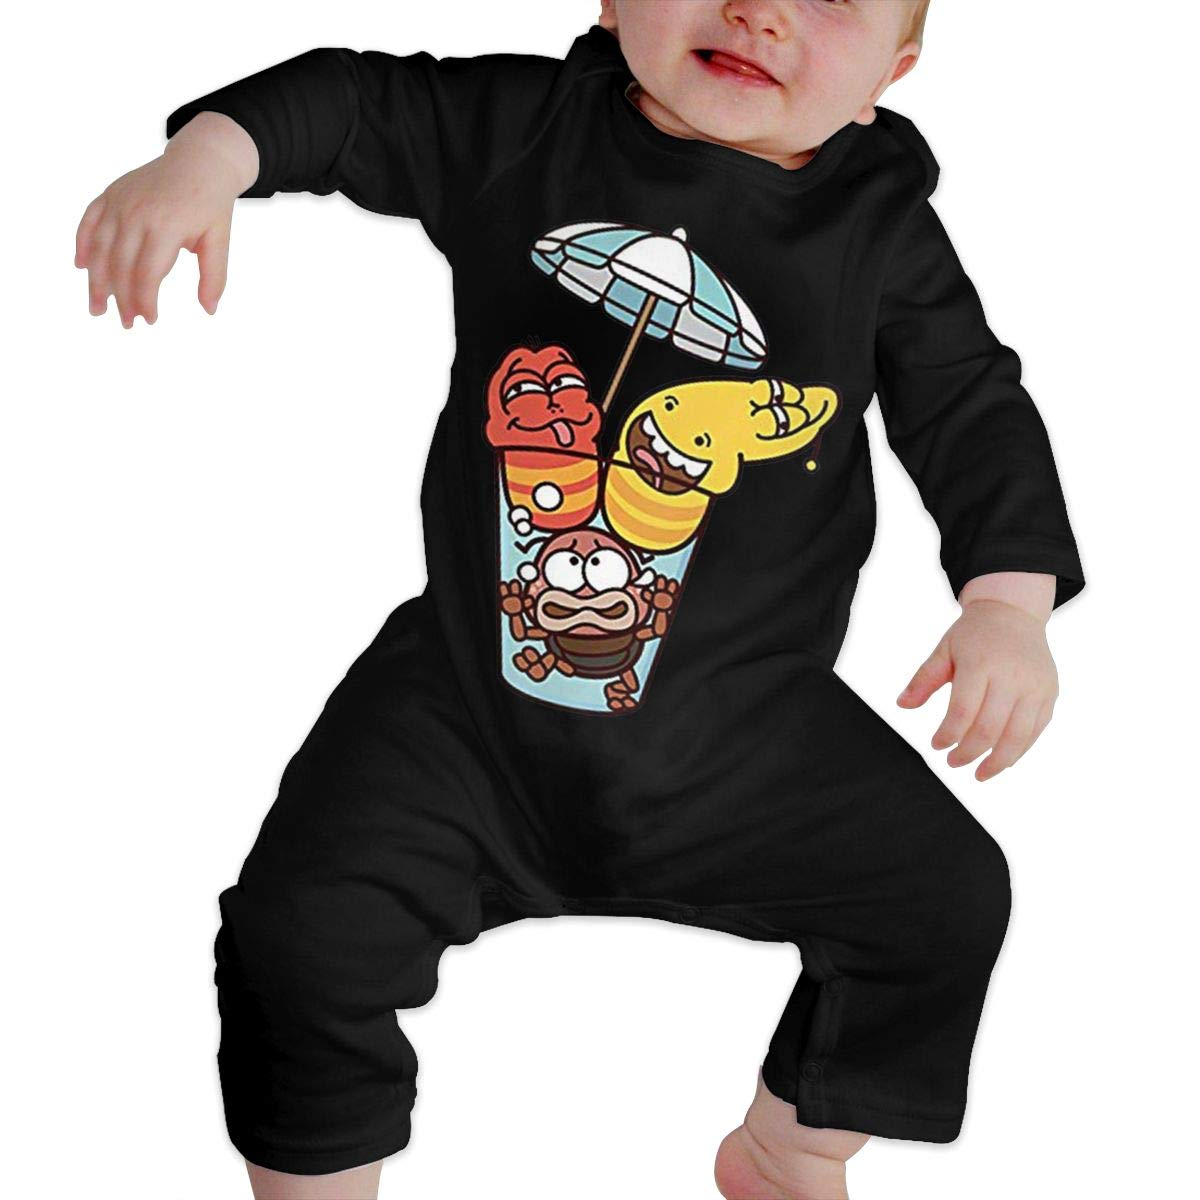 SININIDR Newborn Jumpsuit Infant Baby Girls Drinking Larva Long-Sleeve Bodysuit Playsuit Outfits Clothes Black